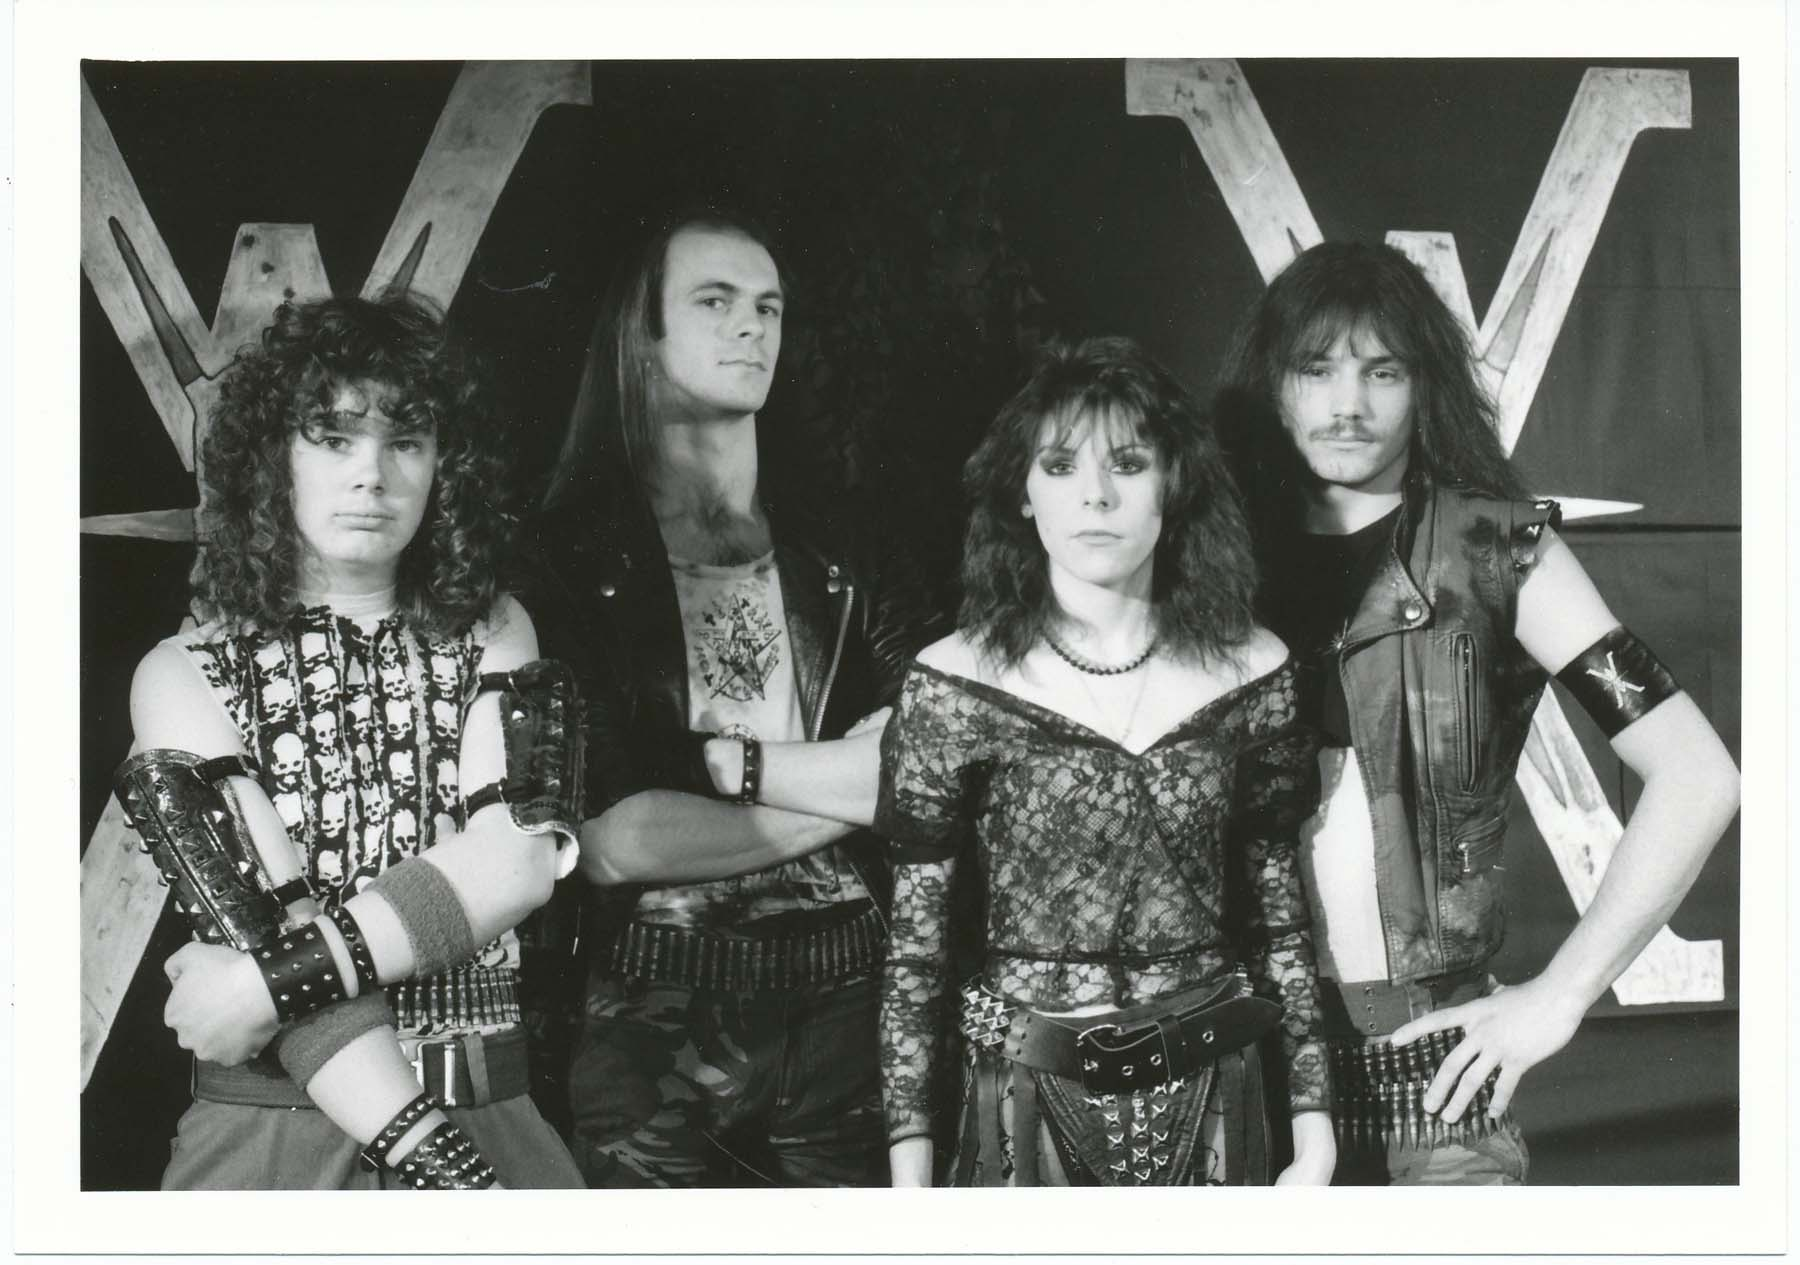 a photo of one woman and four blokes with long hair and leathers